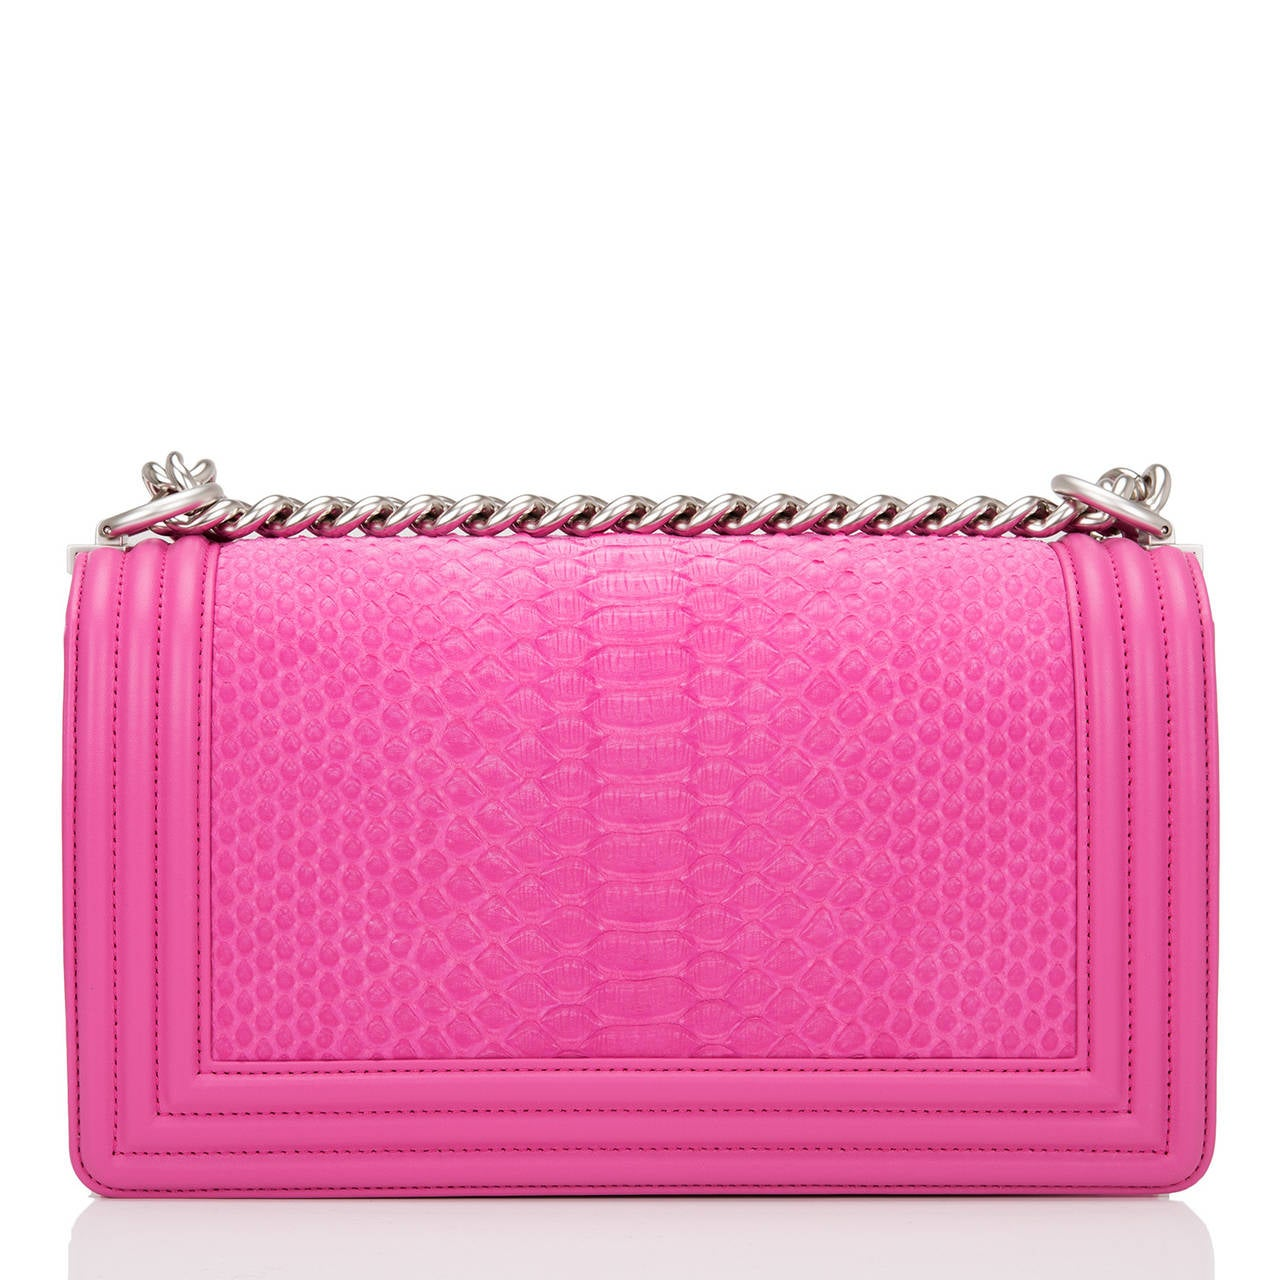 Chanel Pink Python Medium Boy Bag In New Never_worn Condition For Sale In New York, NY